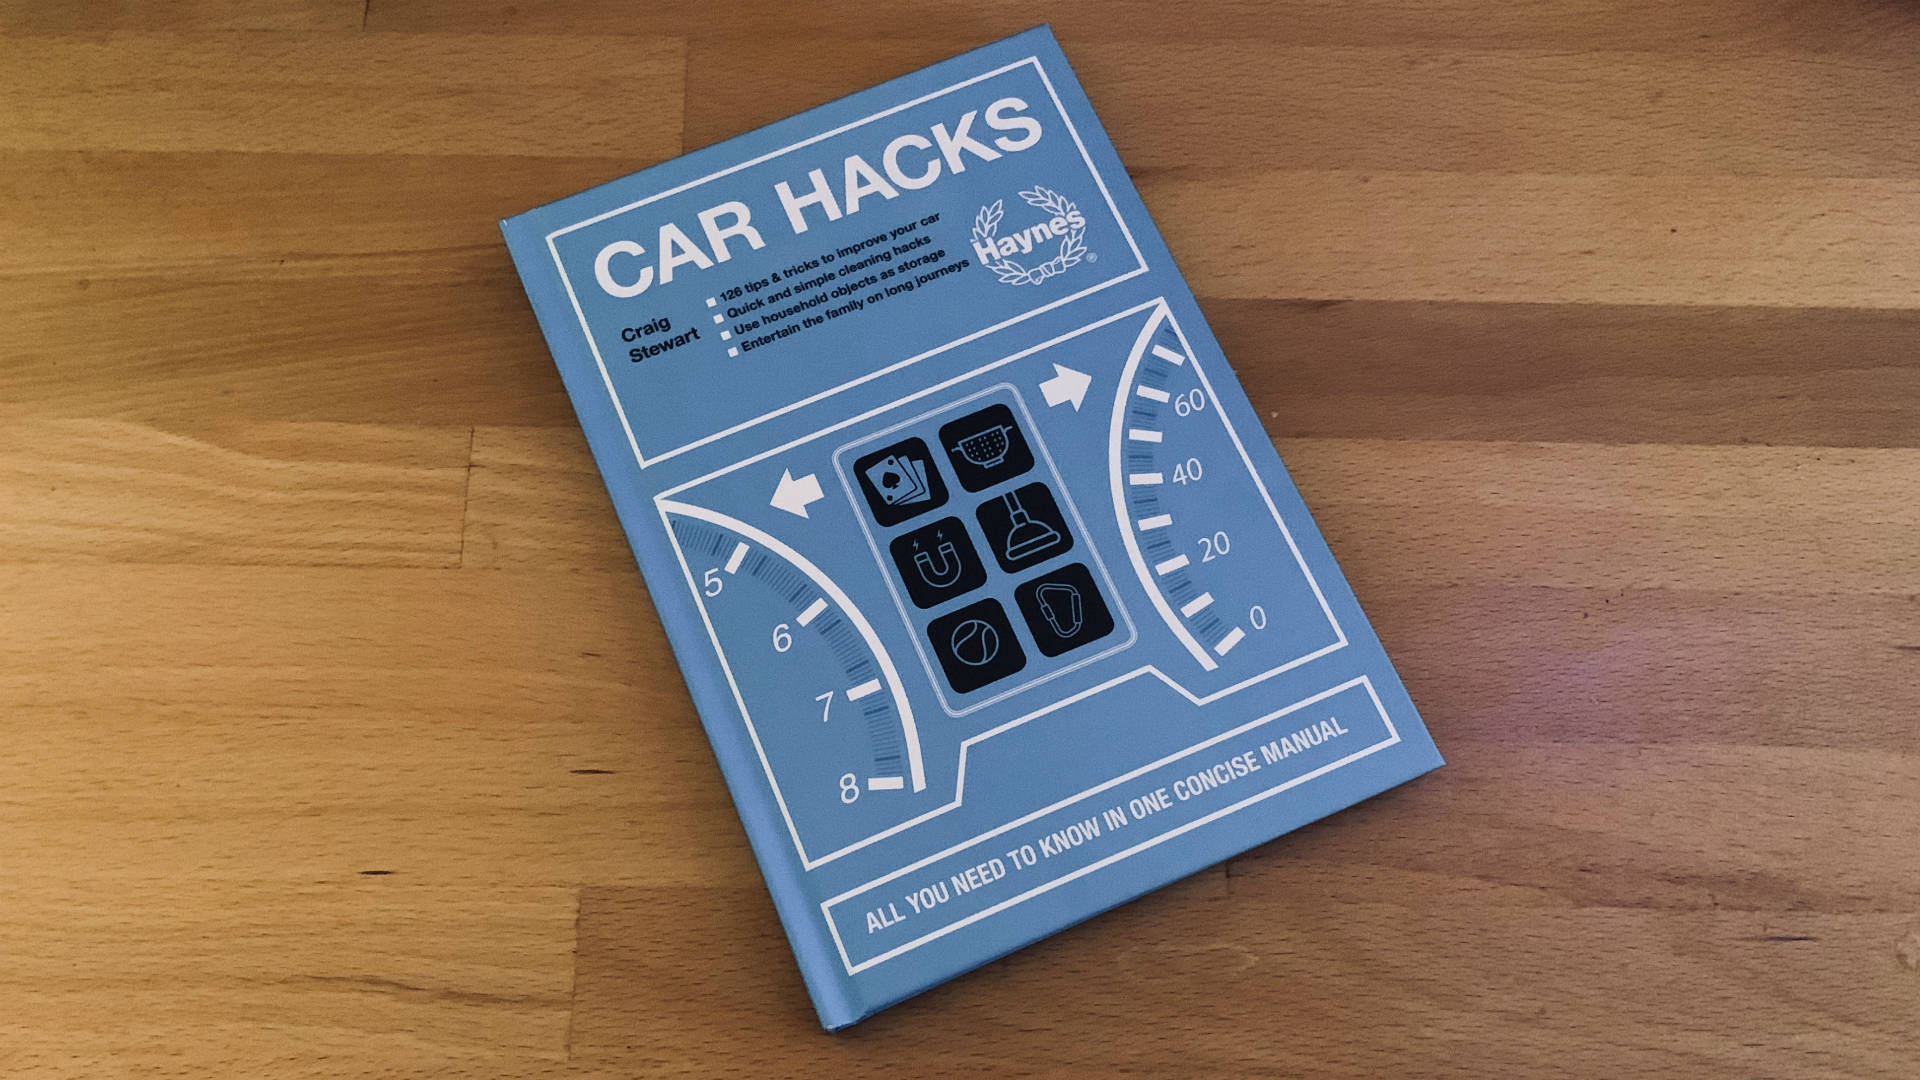 Car Hacks book review on PetrolBlog